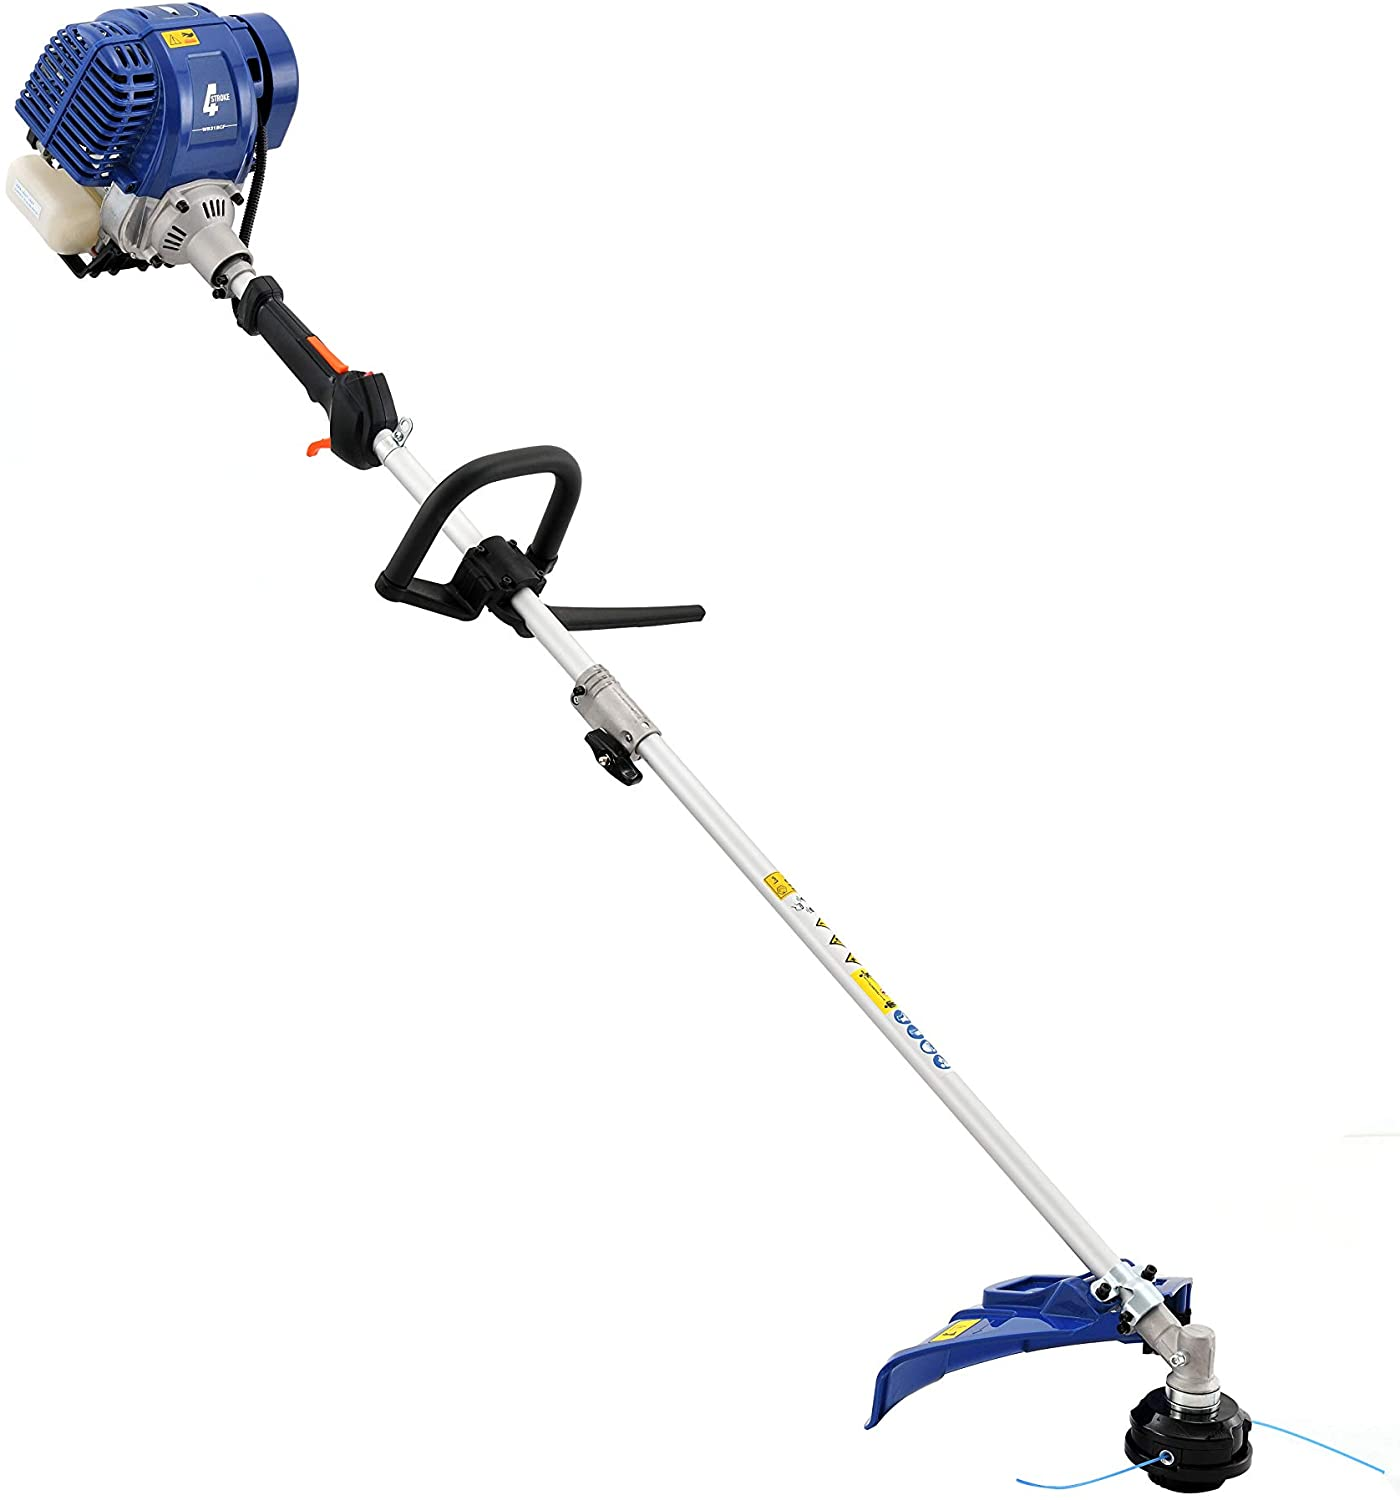 Wild Badger Power 31 cc Gas 4-Cycle 2-in-1 Straight Shaft Trimmer with Brush Cutter